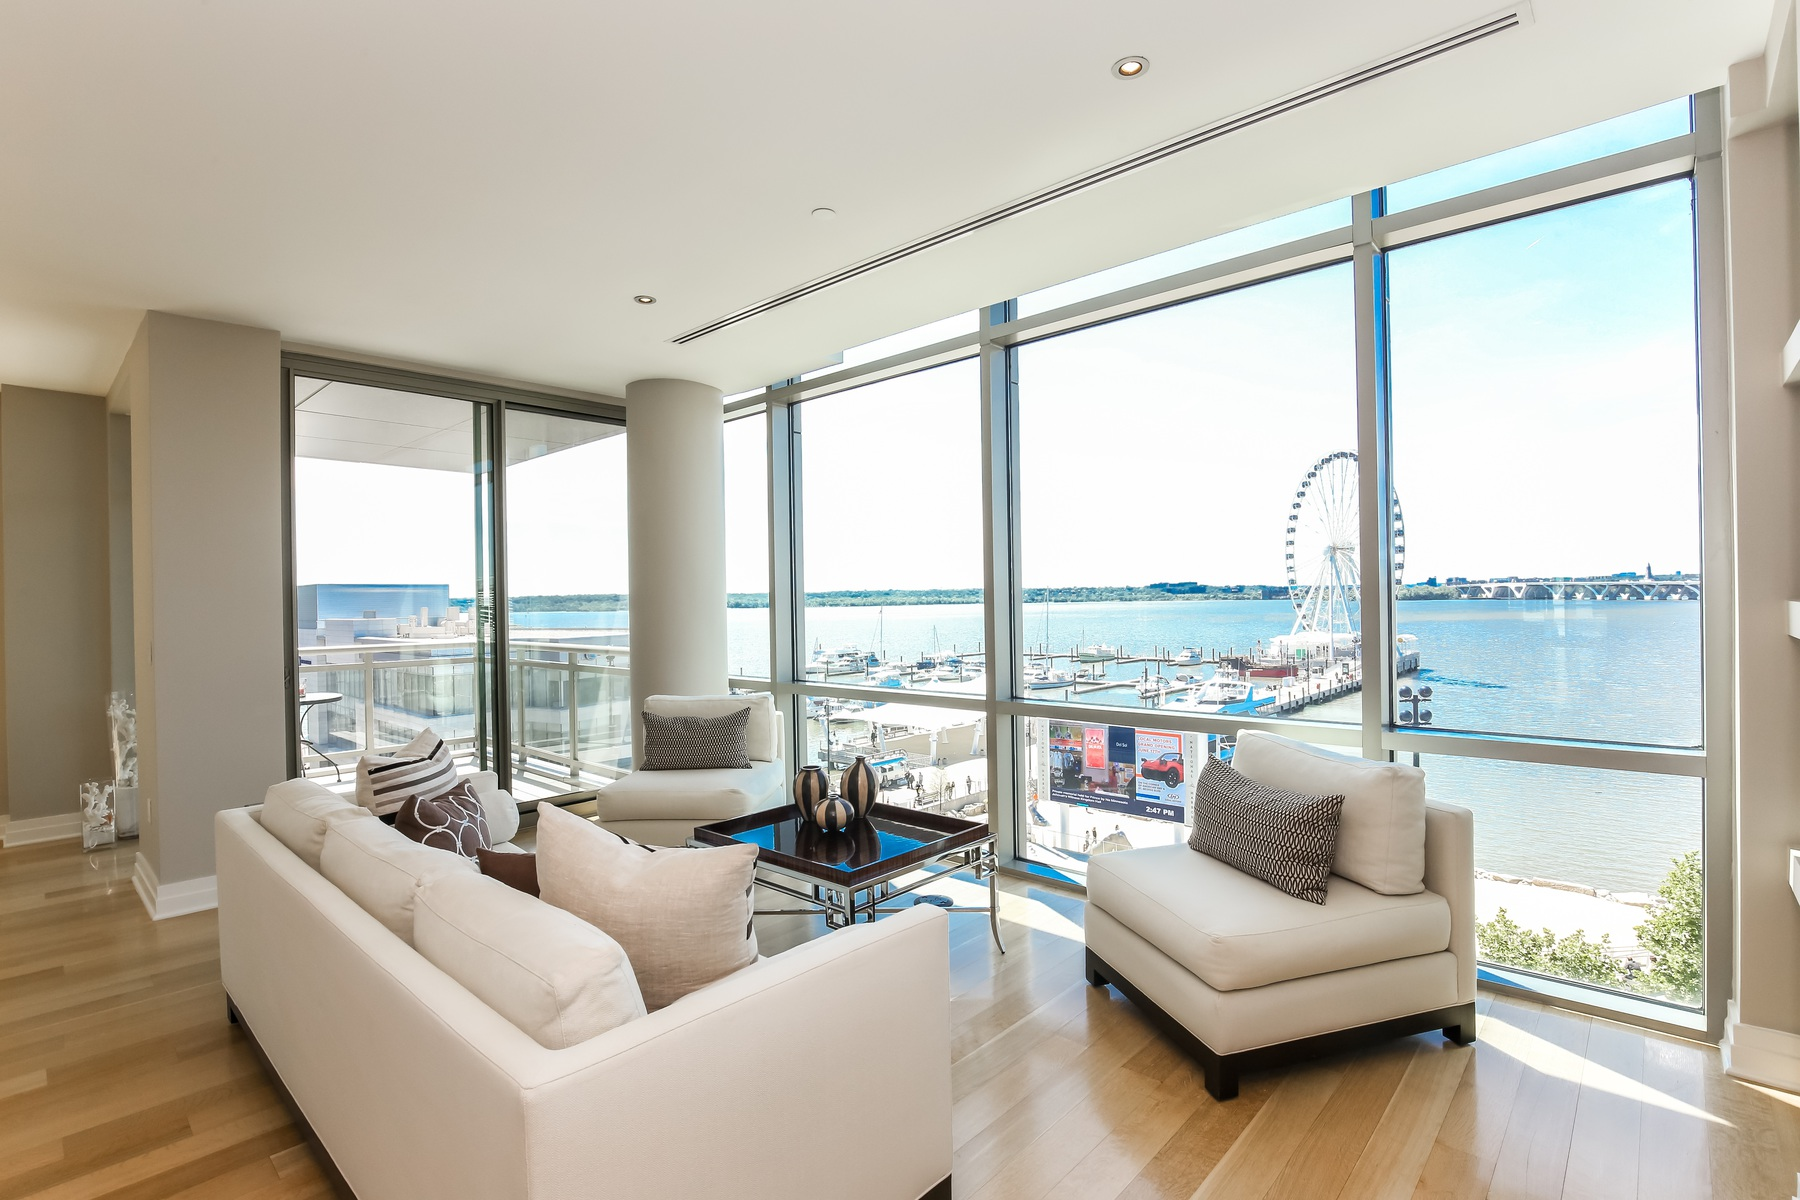 Condominium for Sale at 147 Waterfront 301, National Harbor 147 Waterfront St 301 Oxon Hill, Maryland 20745 United States